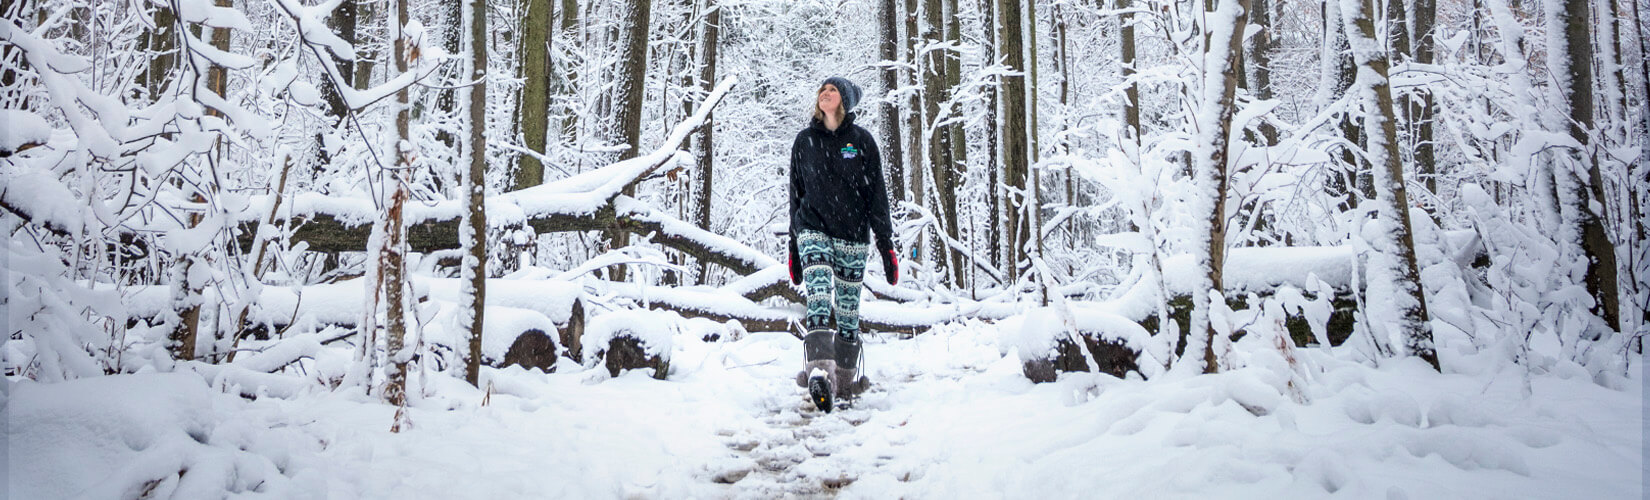 Winter Hiking Gear: 10 Things to Wear When Hitting the Trails :: I've Been Bit! Travel Blog